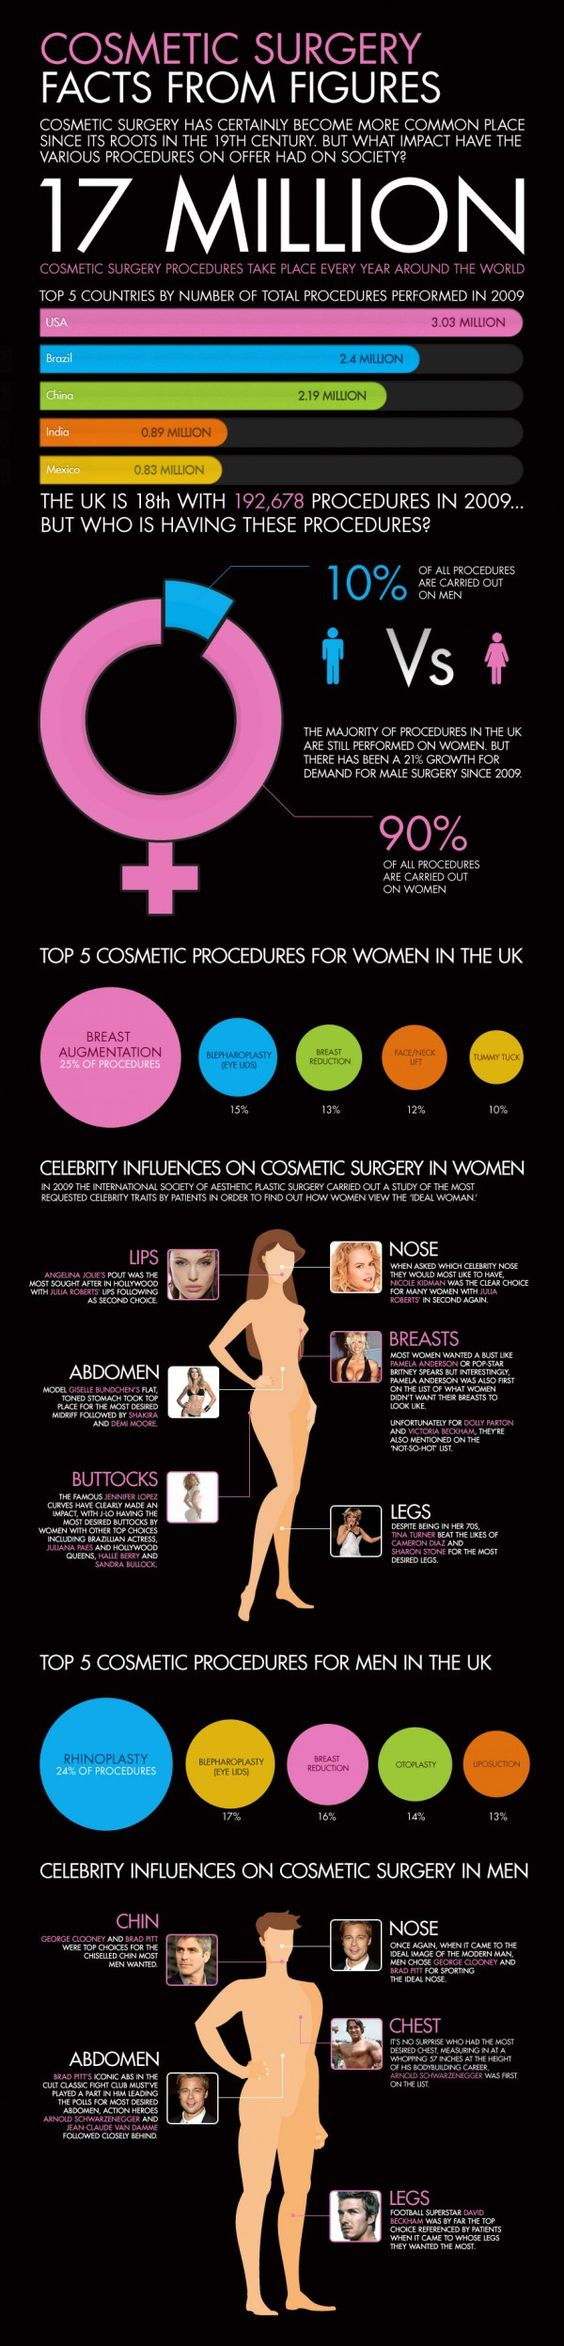 Celebrity Influences On Plastic Surgery | Science 2.0